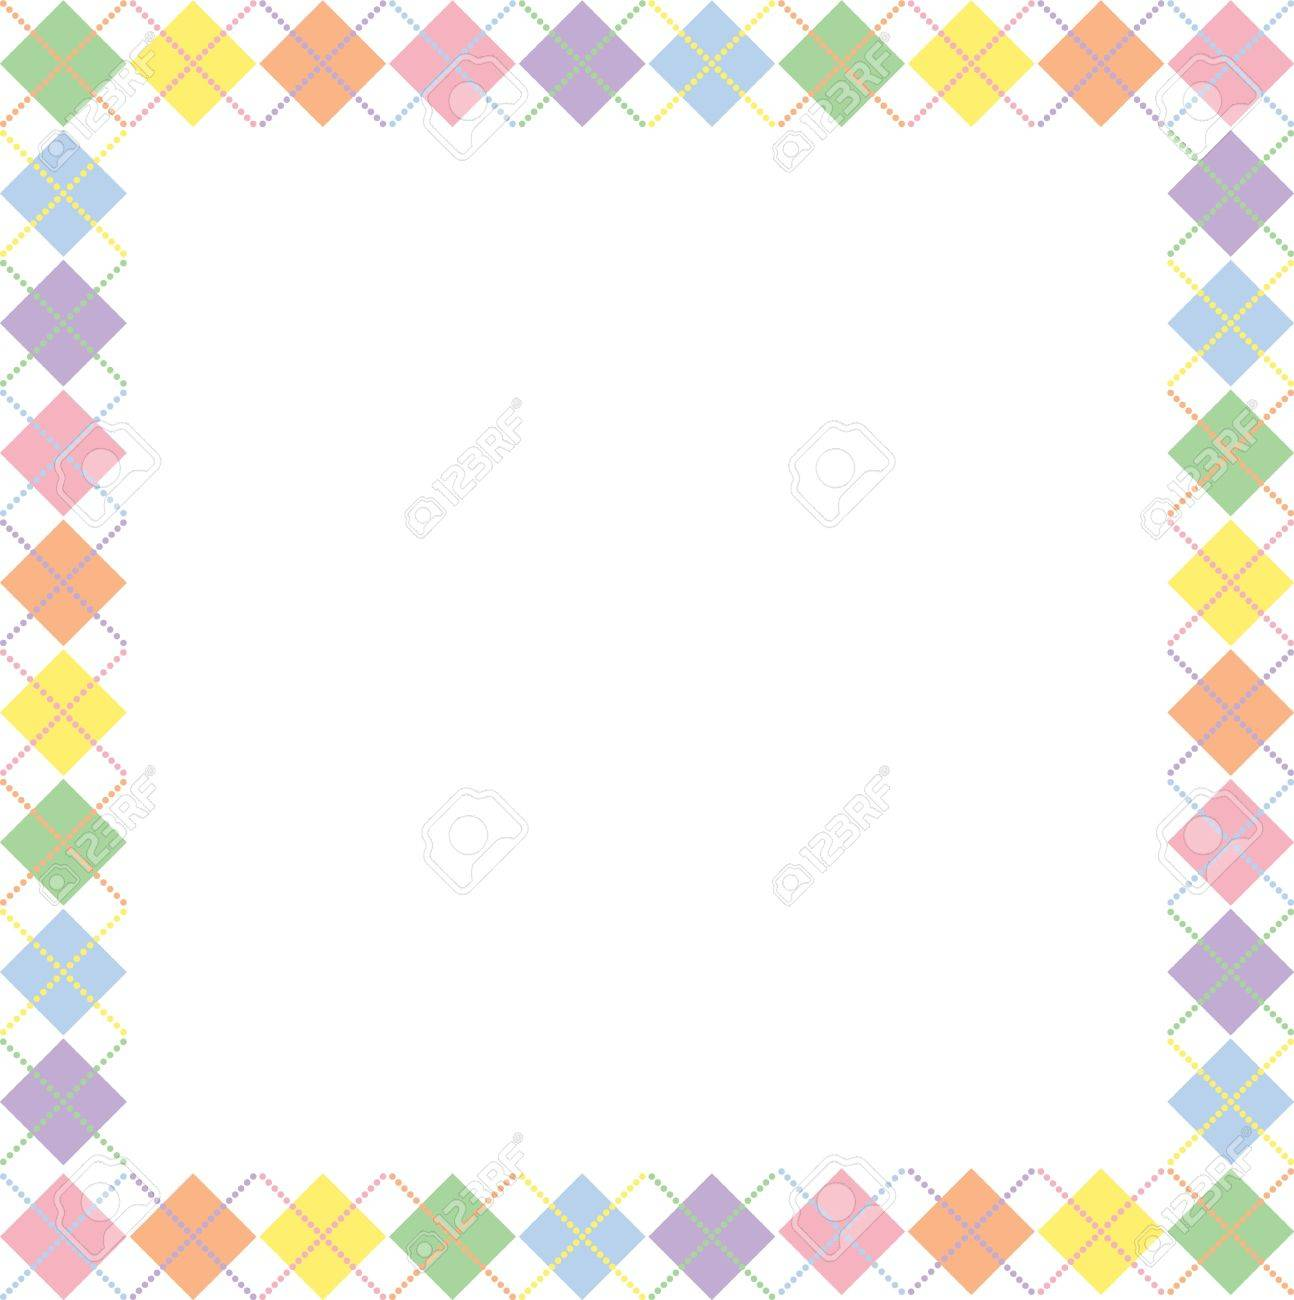 Border Of Pastel Rainbow Colored Argyle Pattern With Space For